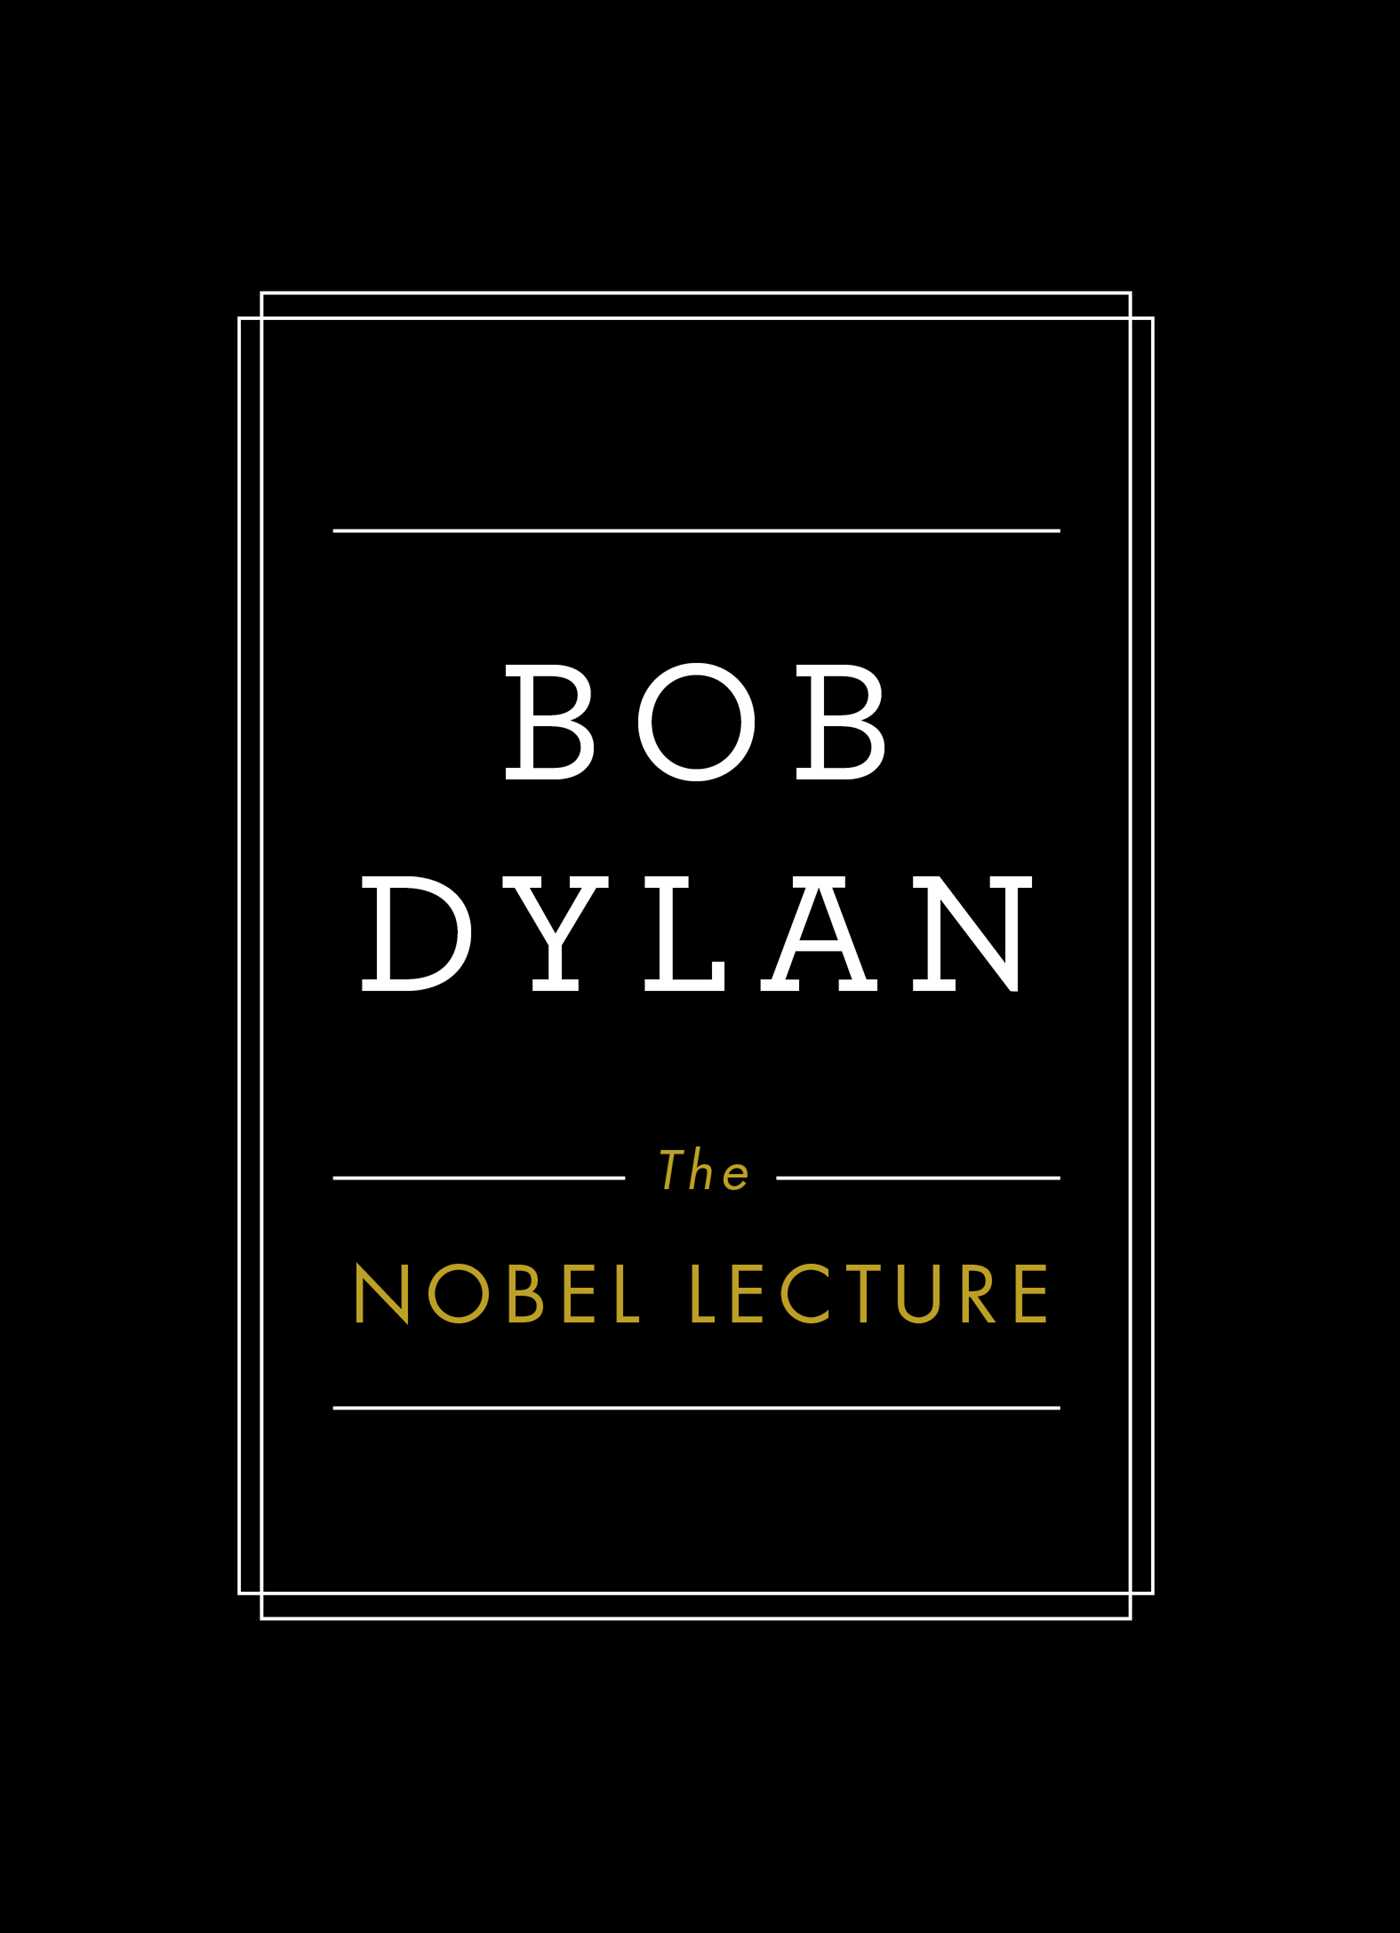 The nobel lecture 9781501189401 hr